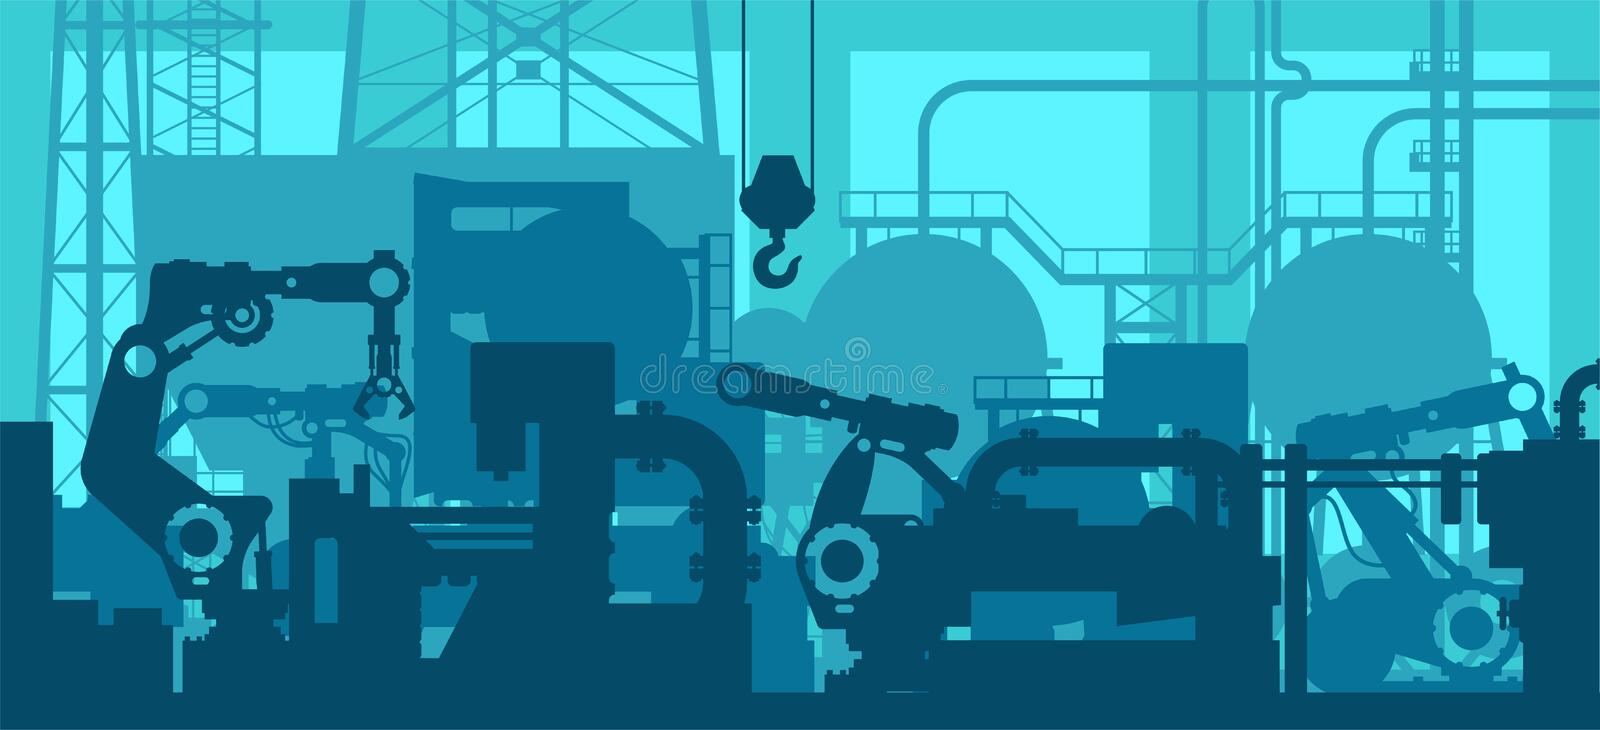 Factory production line - industrial plant shop interior, manufacturing engineering tool silhouettes royalty free illustration